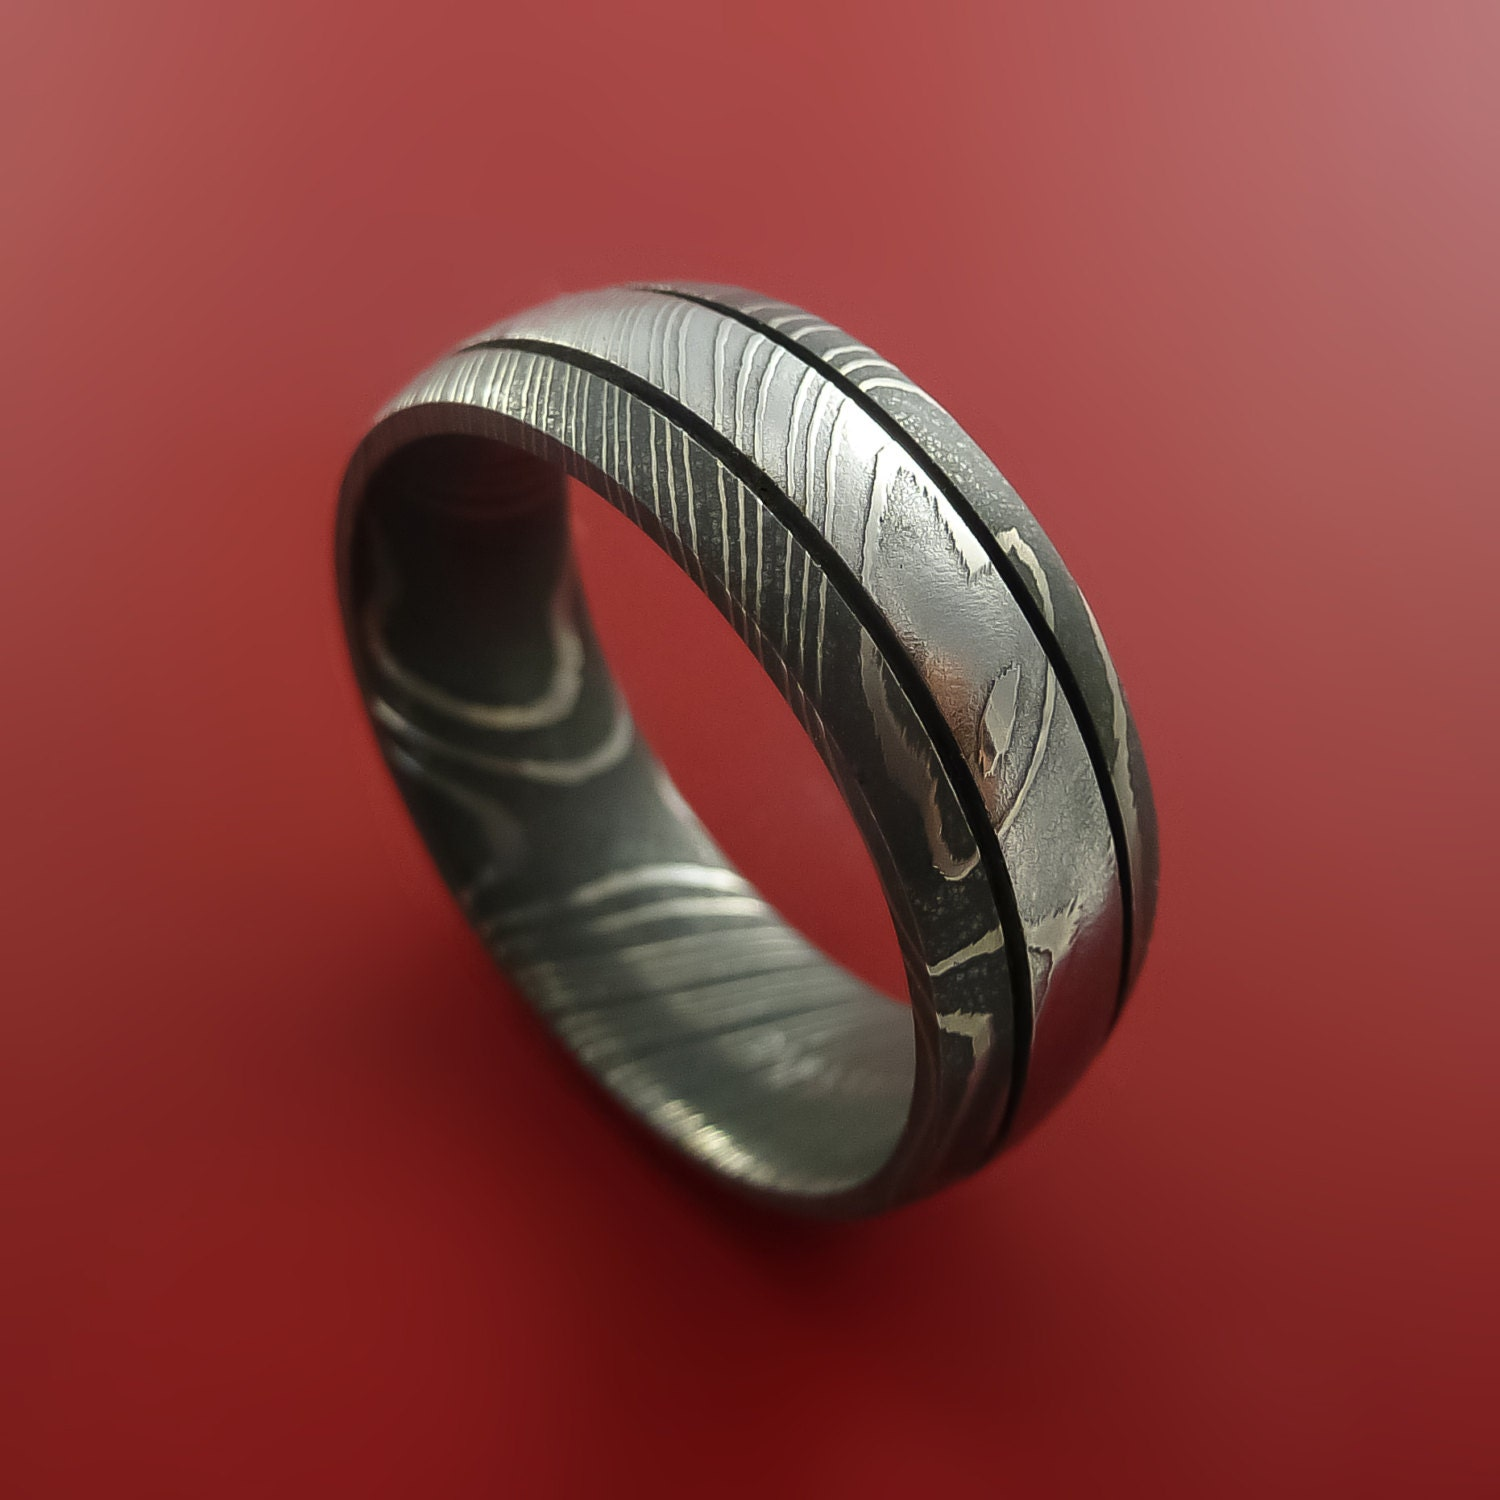 Damascus Steel Ring Wedding Band Genuine by StonebrookJewelry